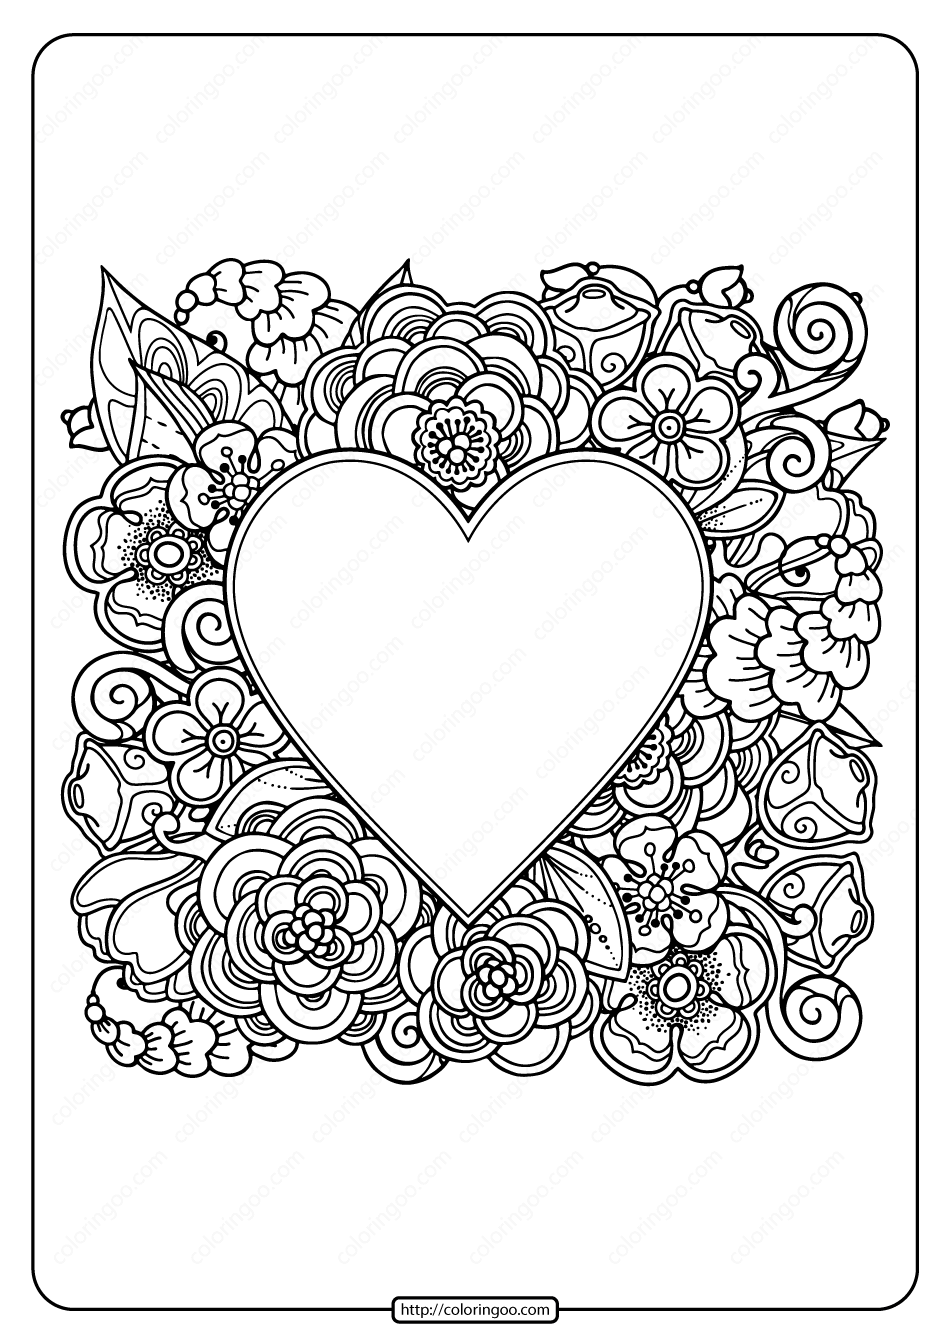 free heart coloring pages free printable heart with flowers pdf coloring page heart coloring pages free